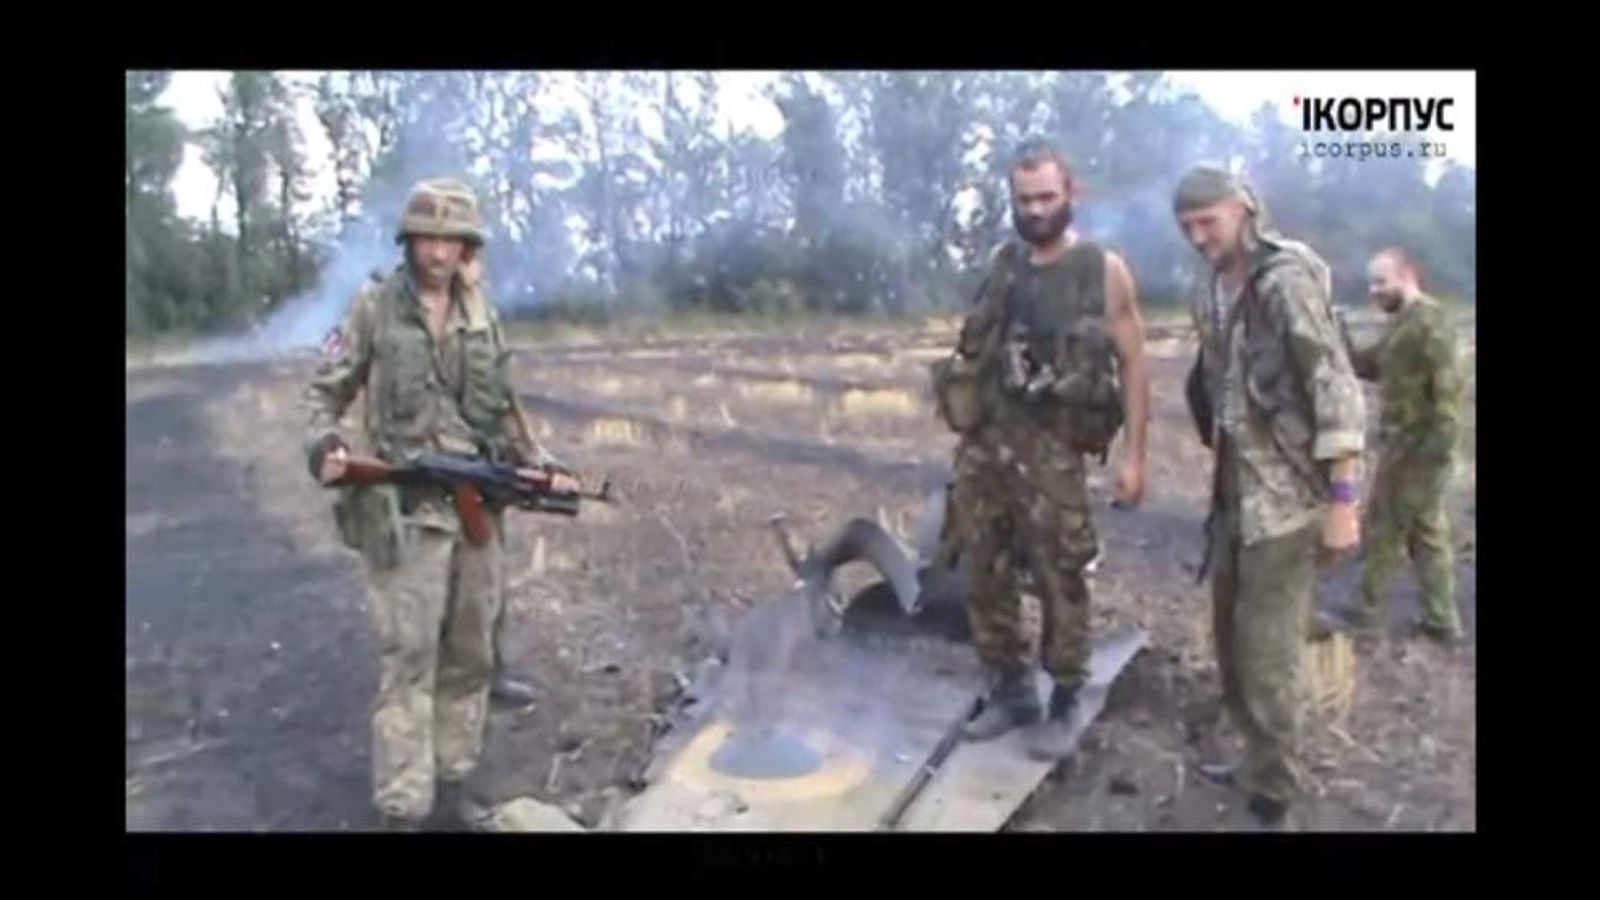 Unverified video of downed Ukrainian fighter jets